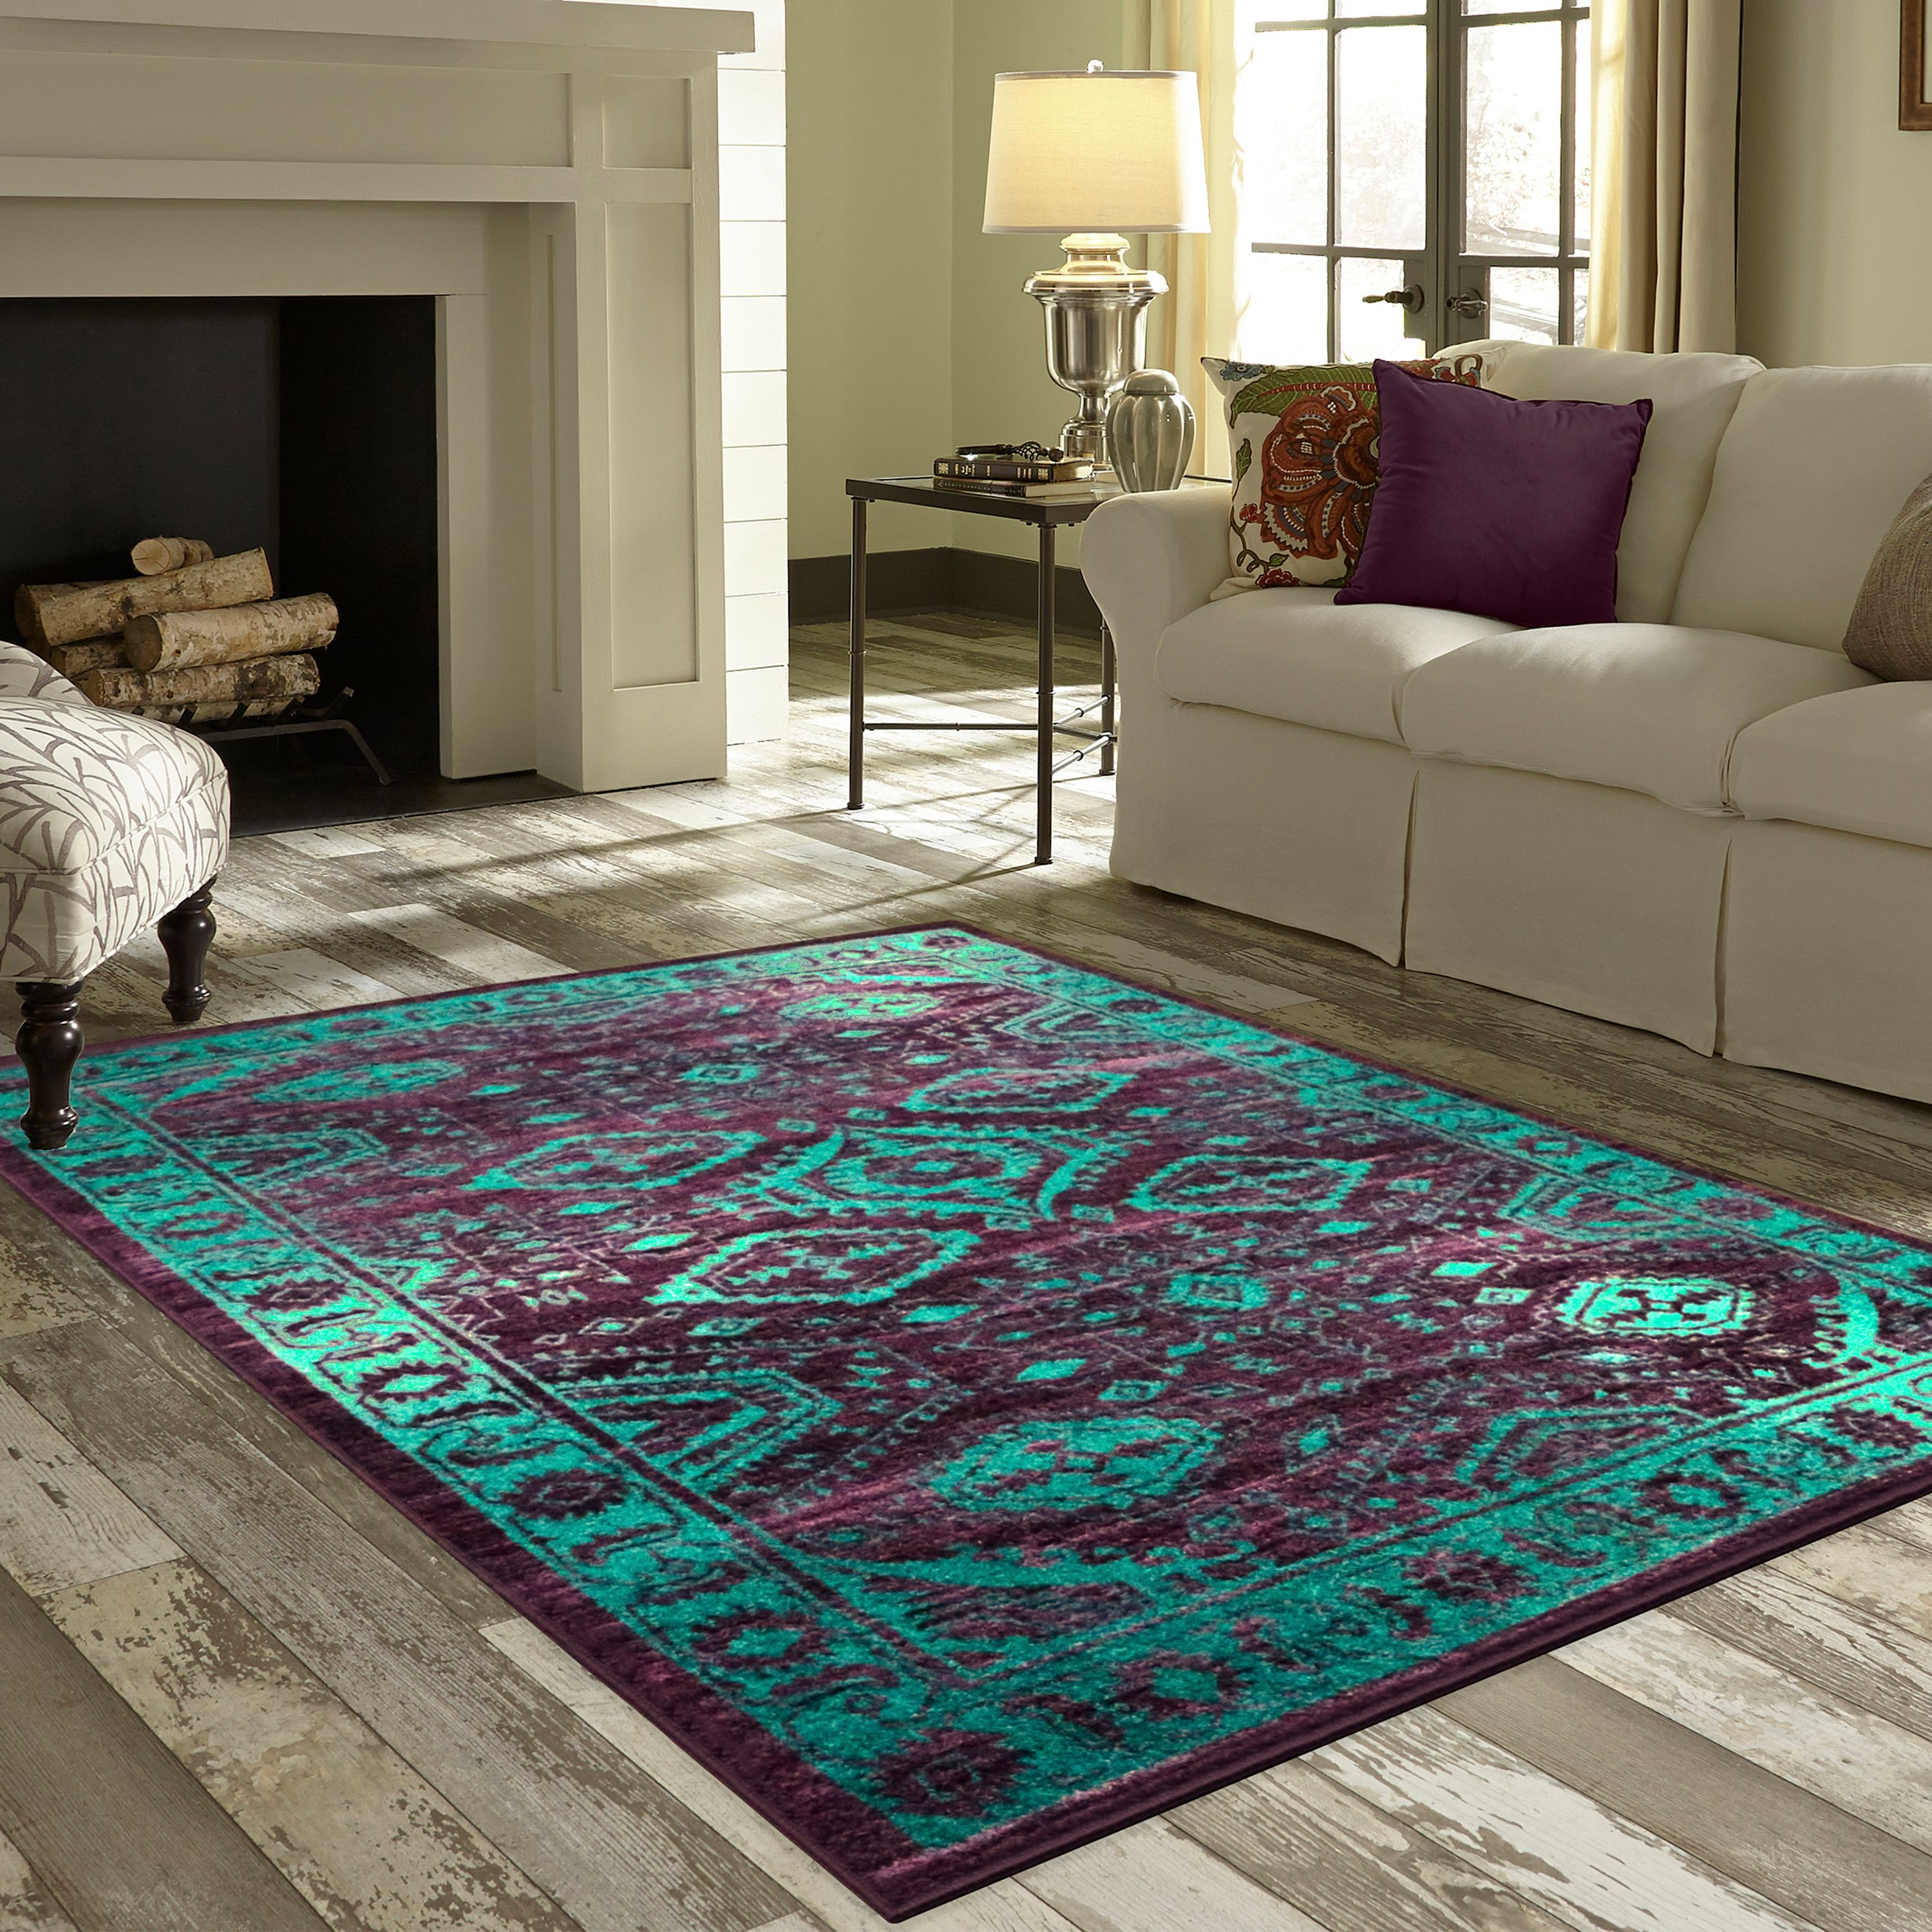 Mainstays Global Arya Texture Print Area Rug or Runner, Multiple Sizes